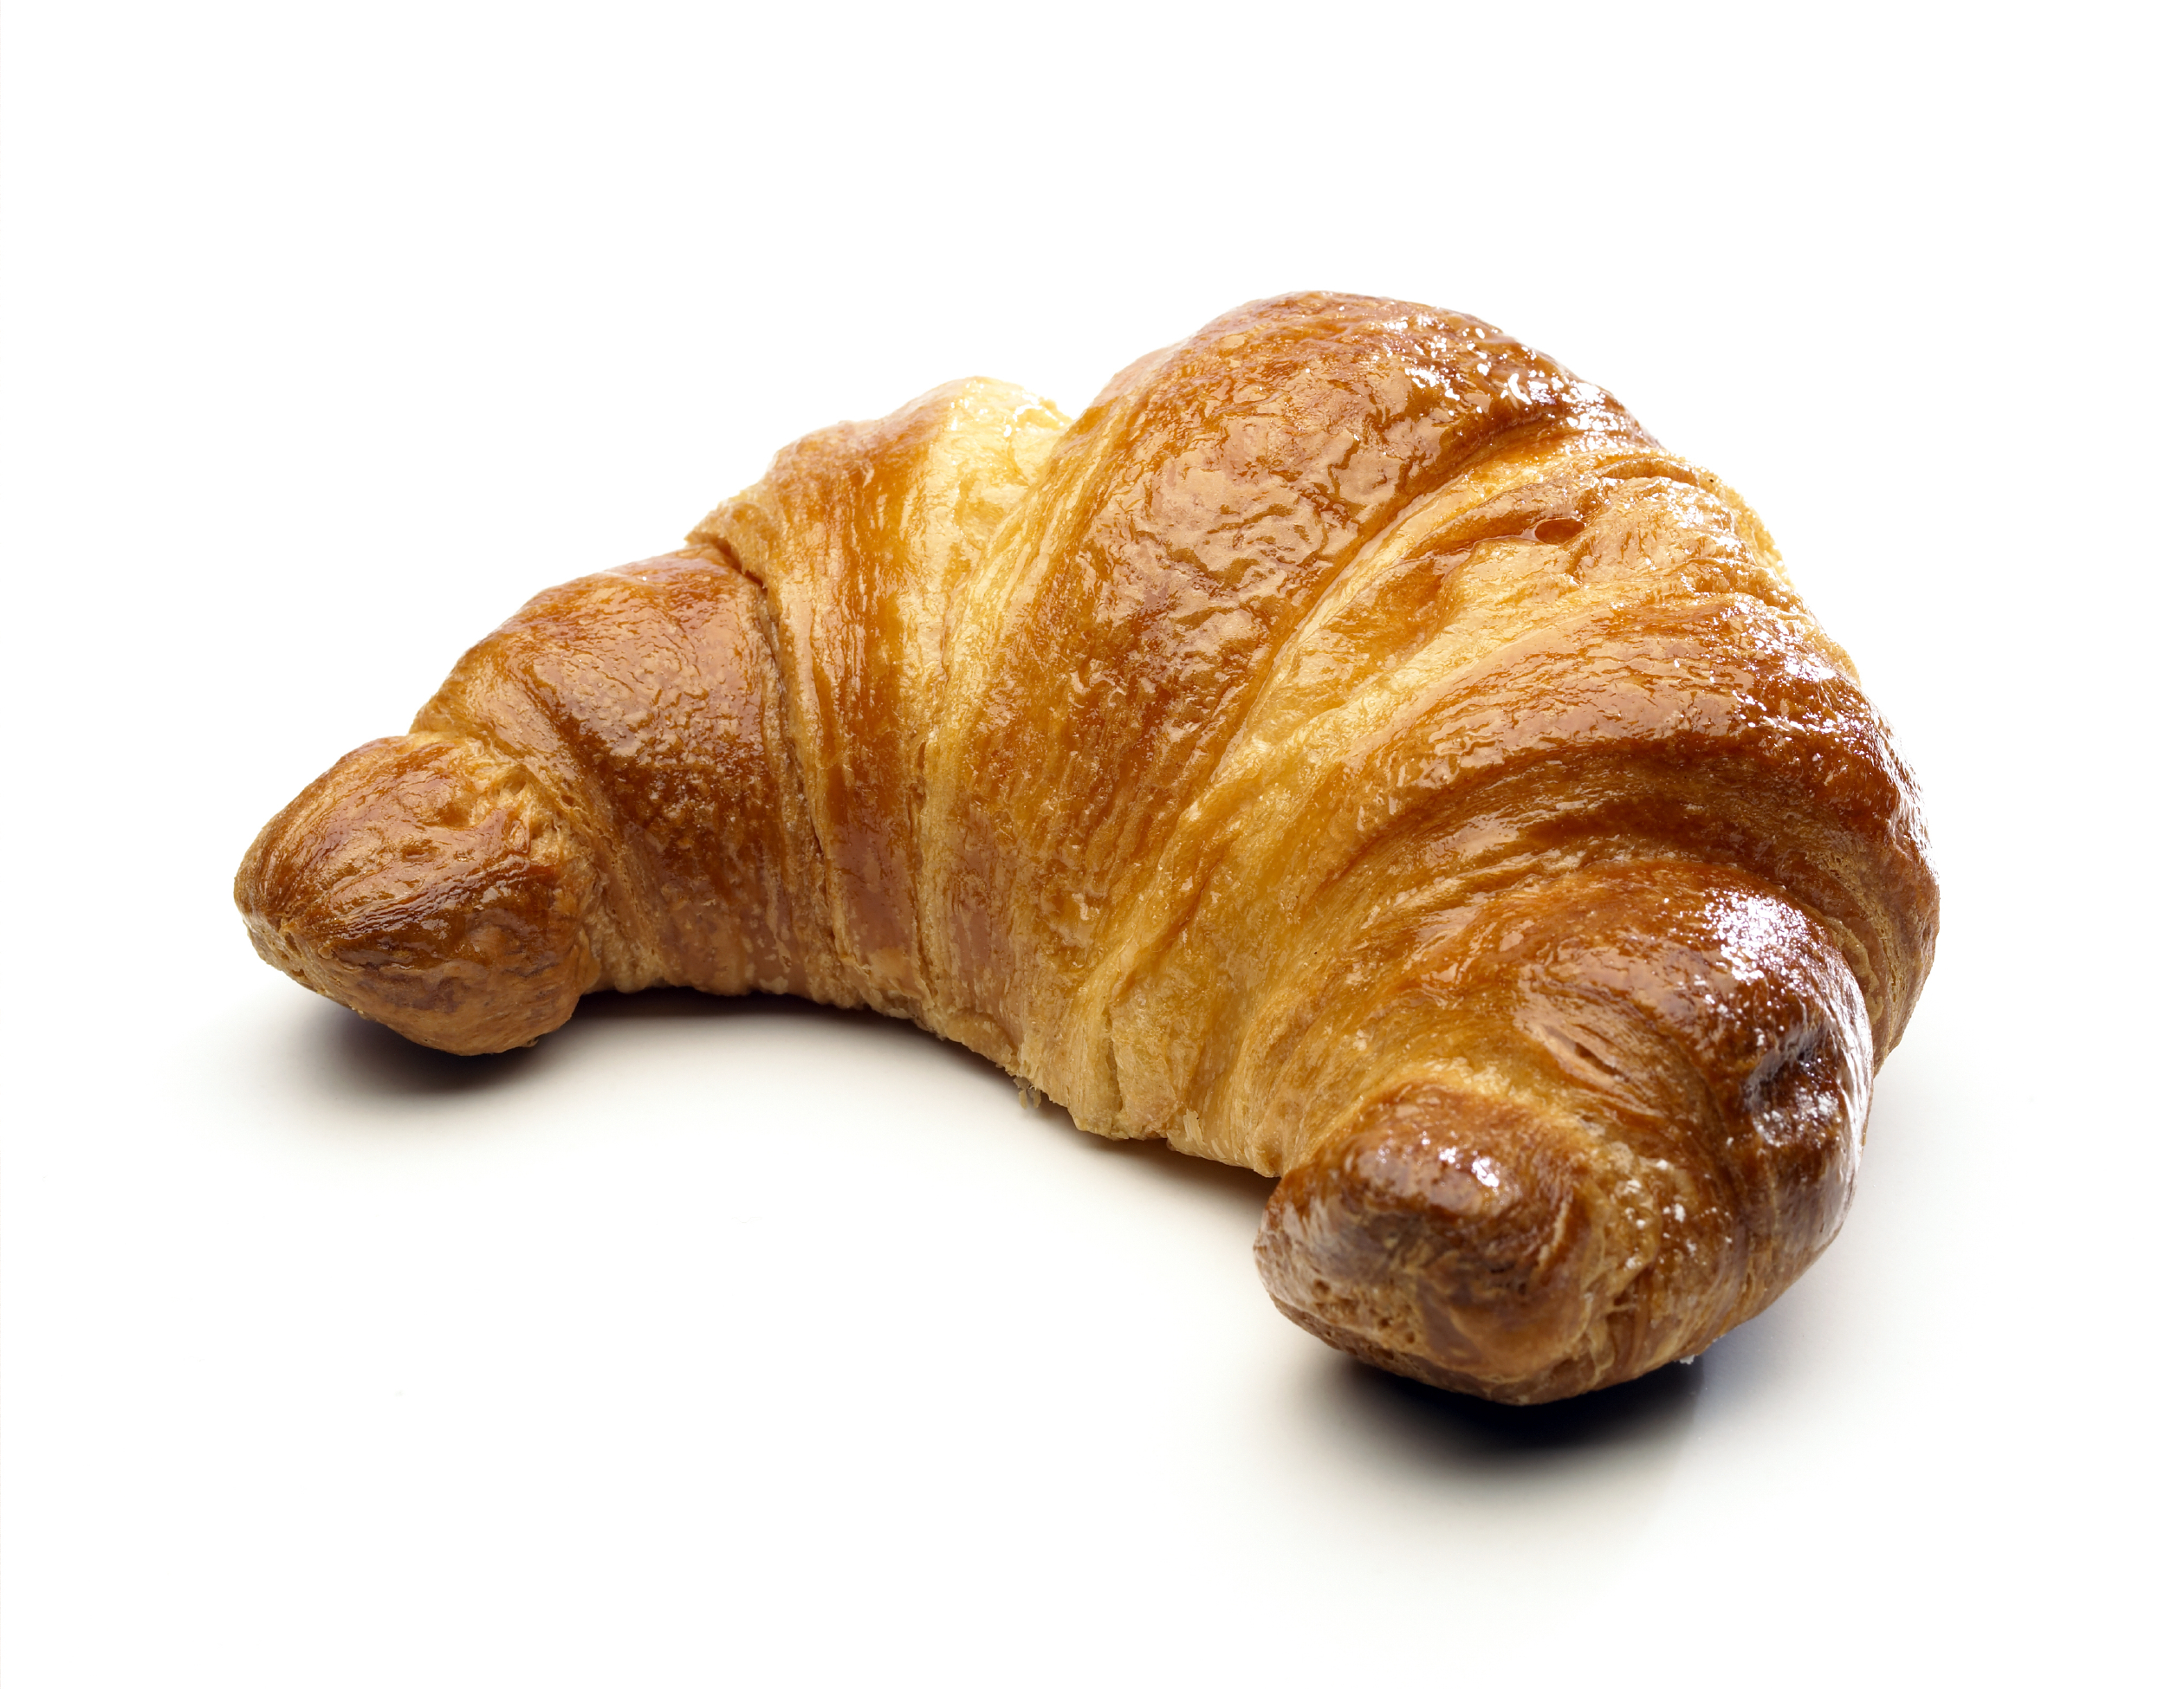 In Search of the Perfect Croissant